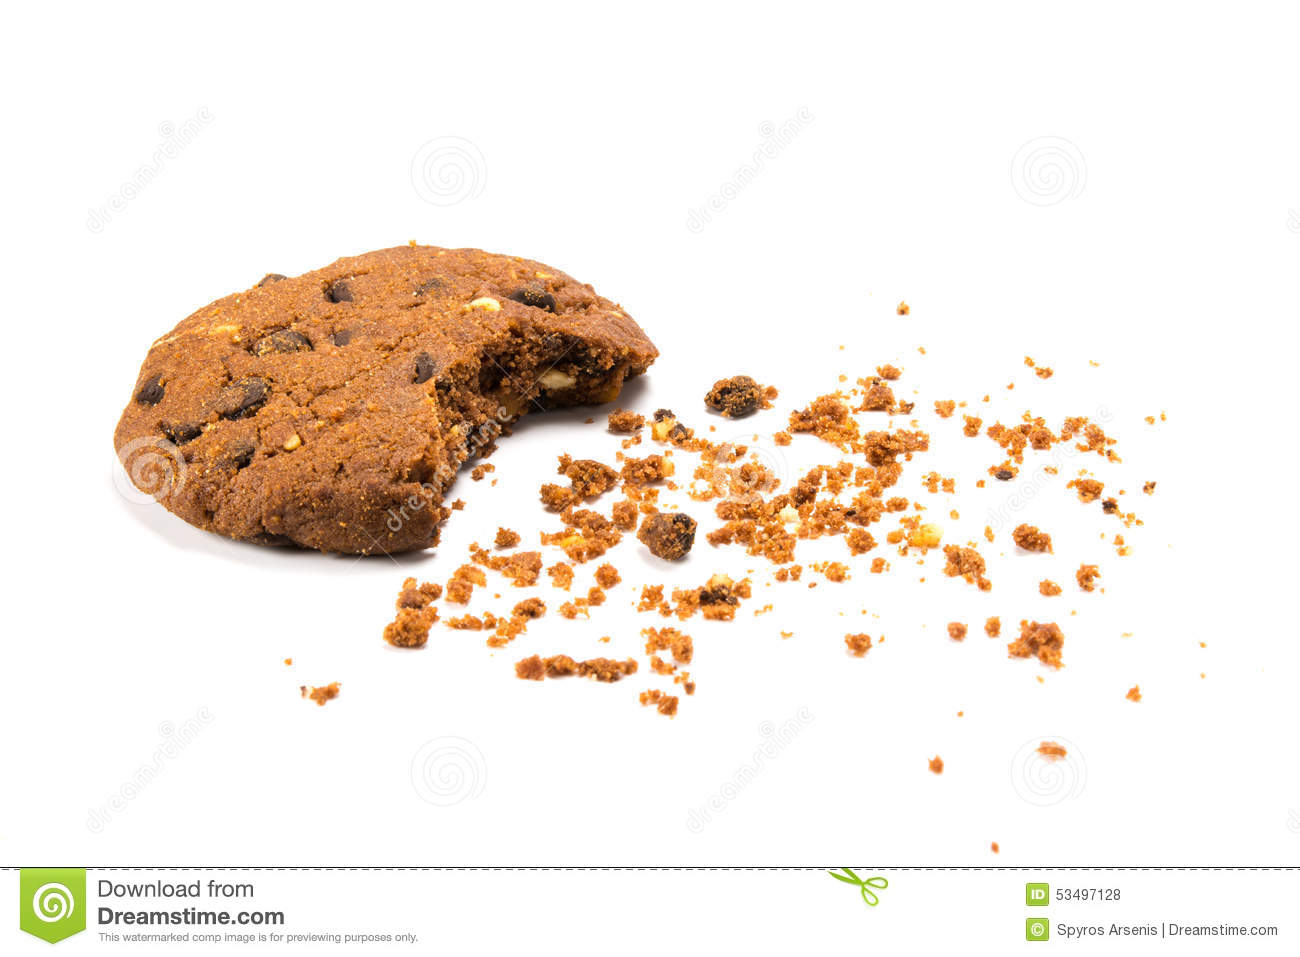 u0391 bitten cookie with crumbs stock photo image of chocolate chip cookie clipart chocolate chip cookies clip art small